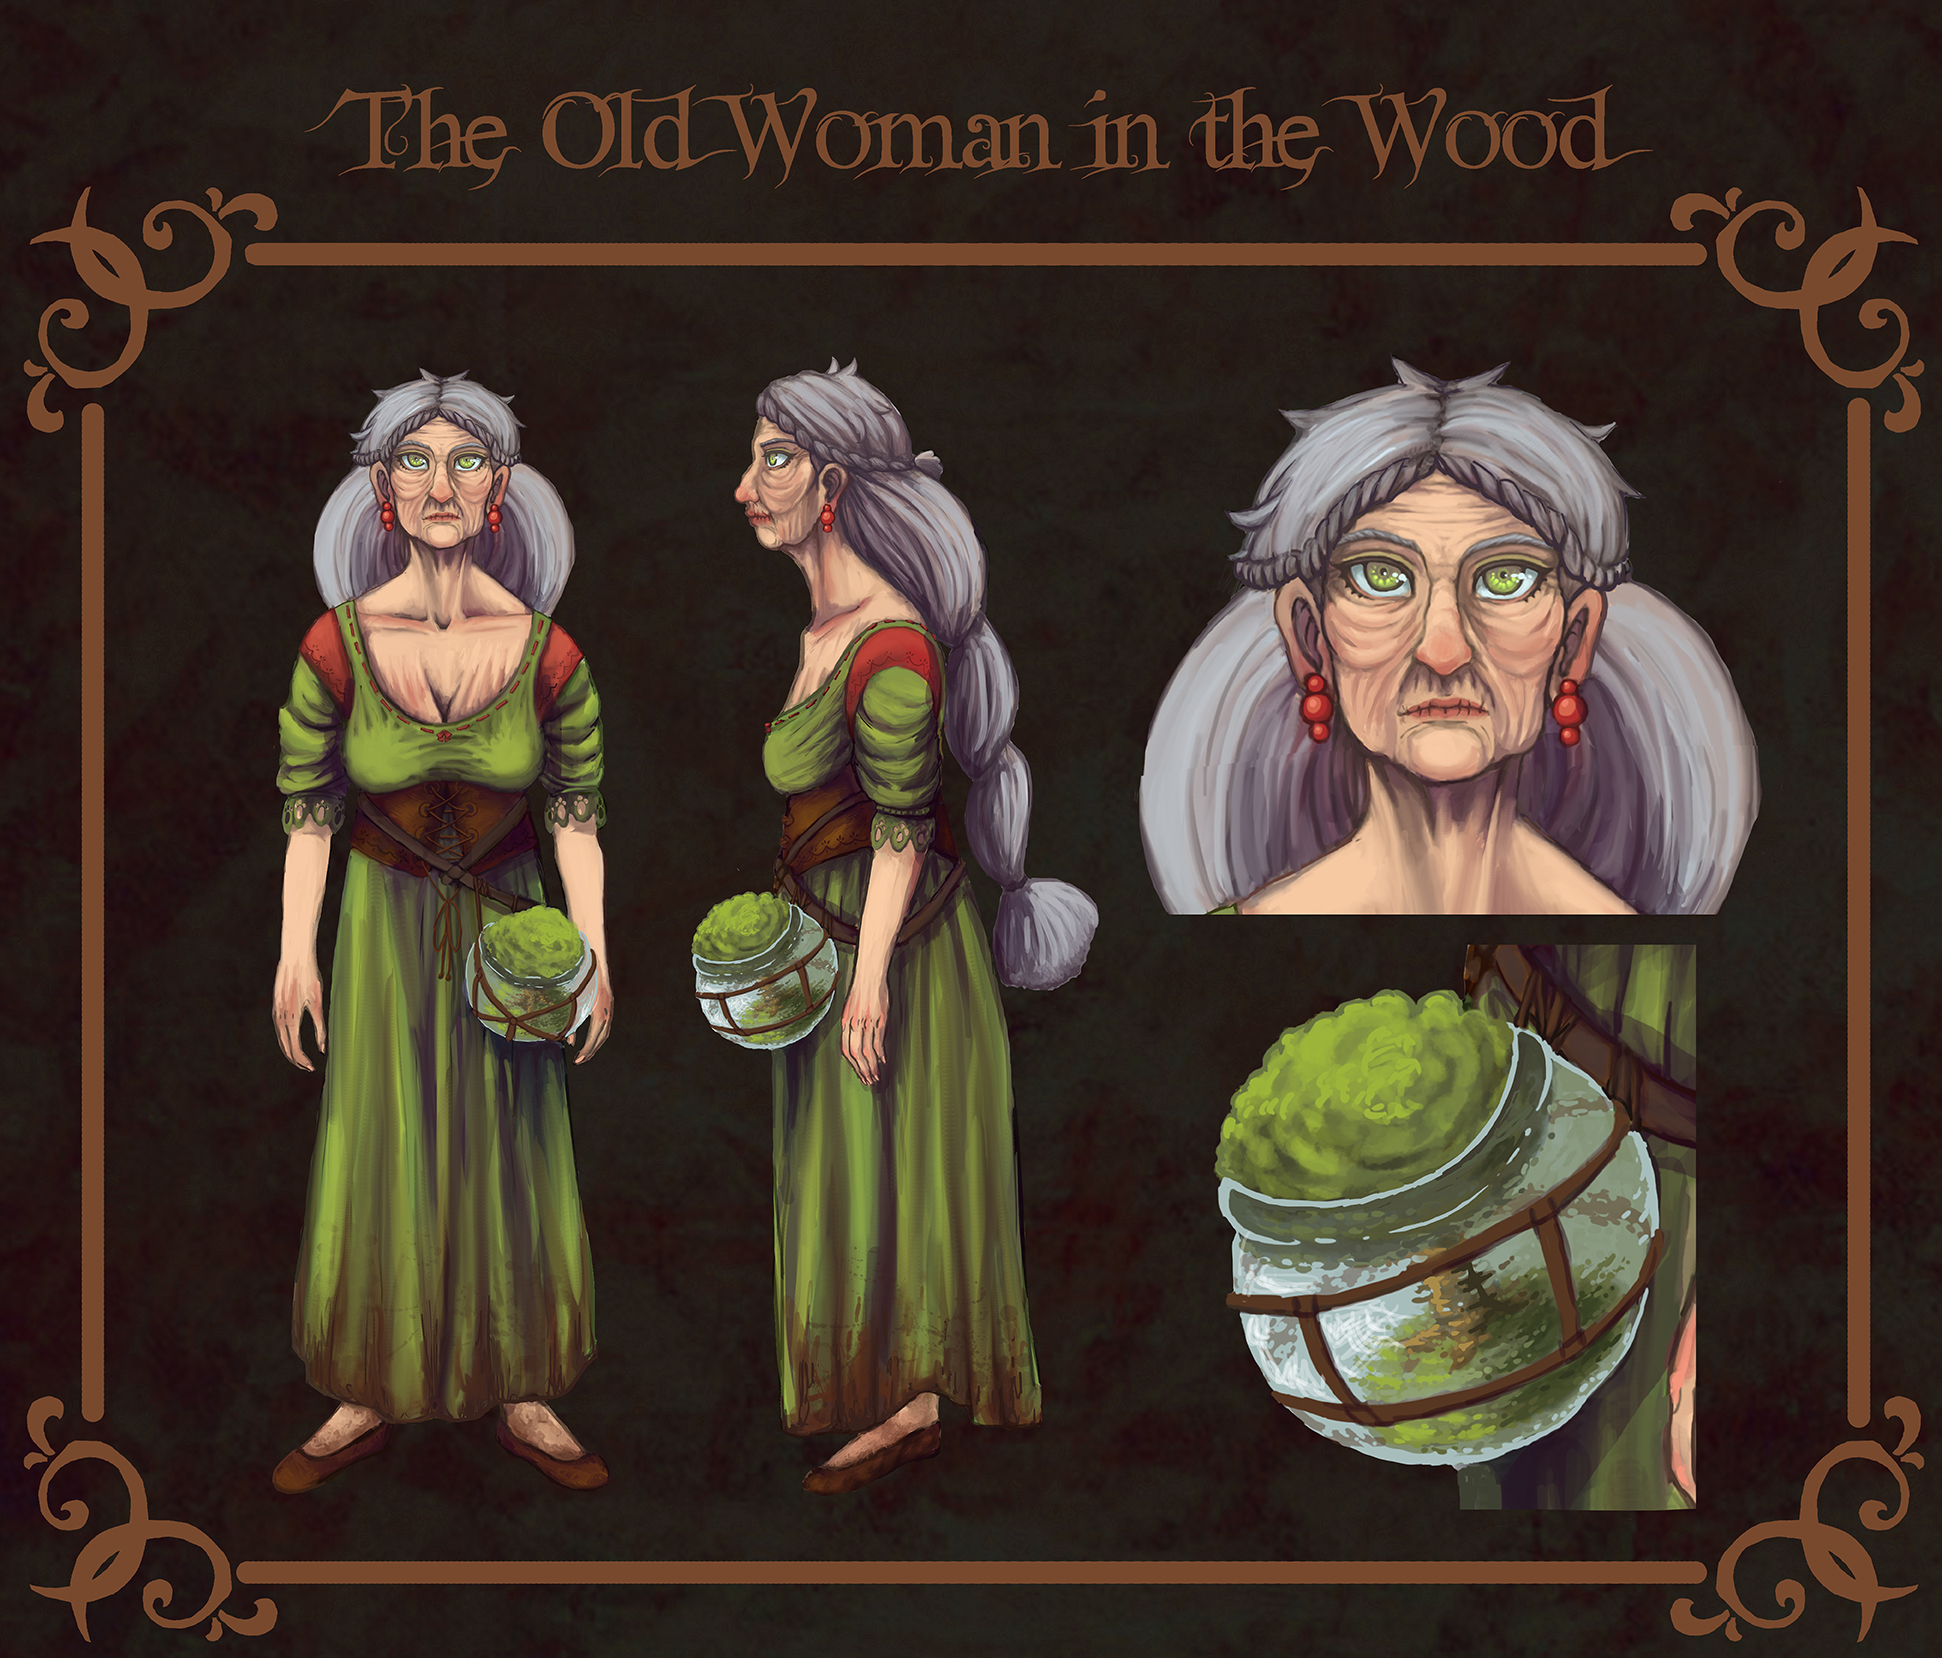 jessica greving_character sheet_the old woman in the wood SMOL .jpg